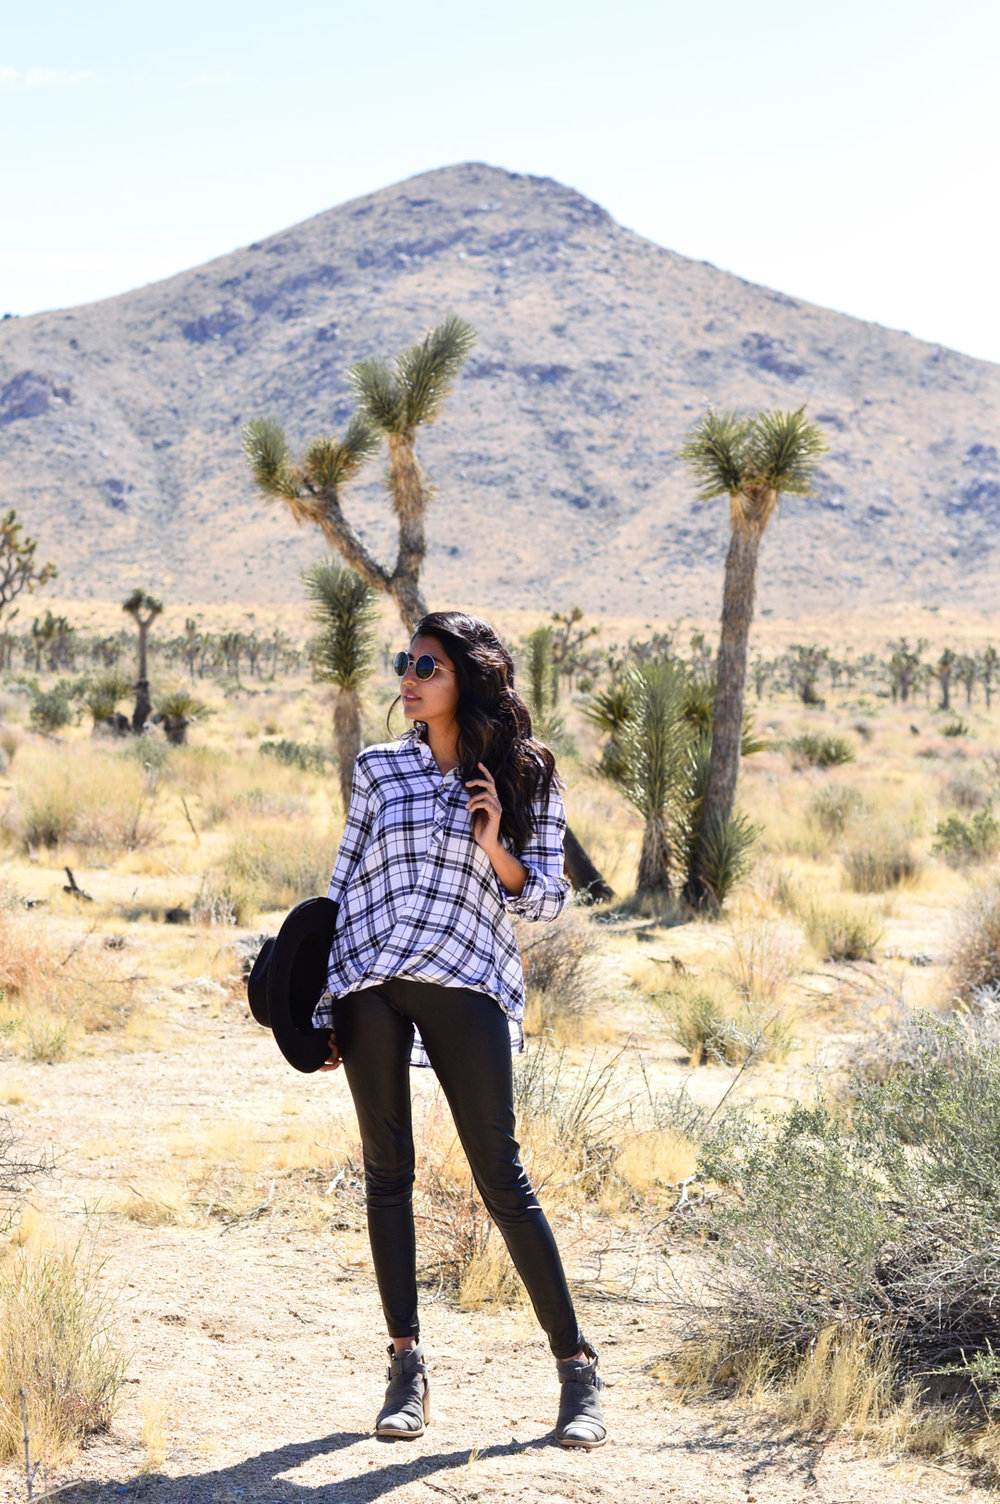 joshua-tree-national-park-california-travel-plaid-blogger-outfit 22